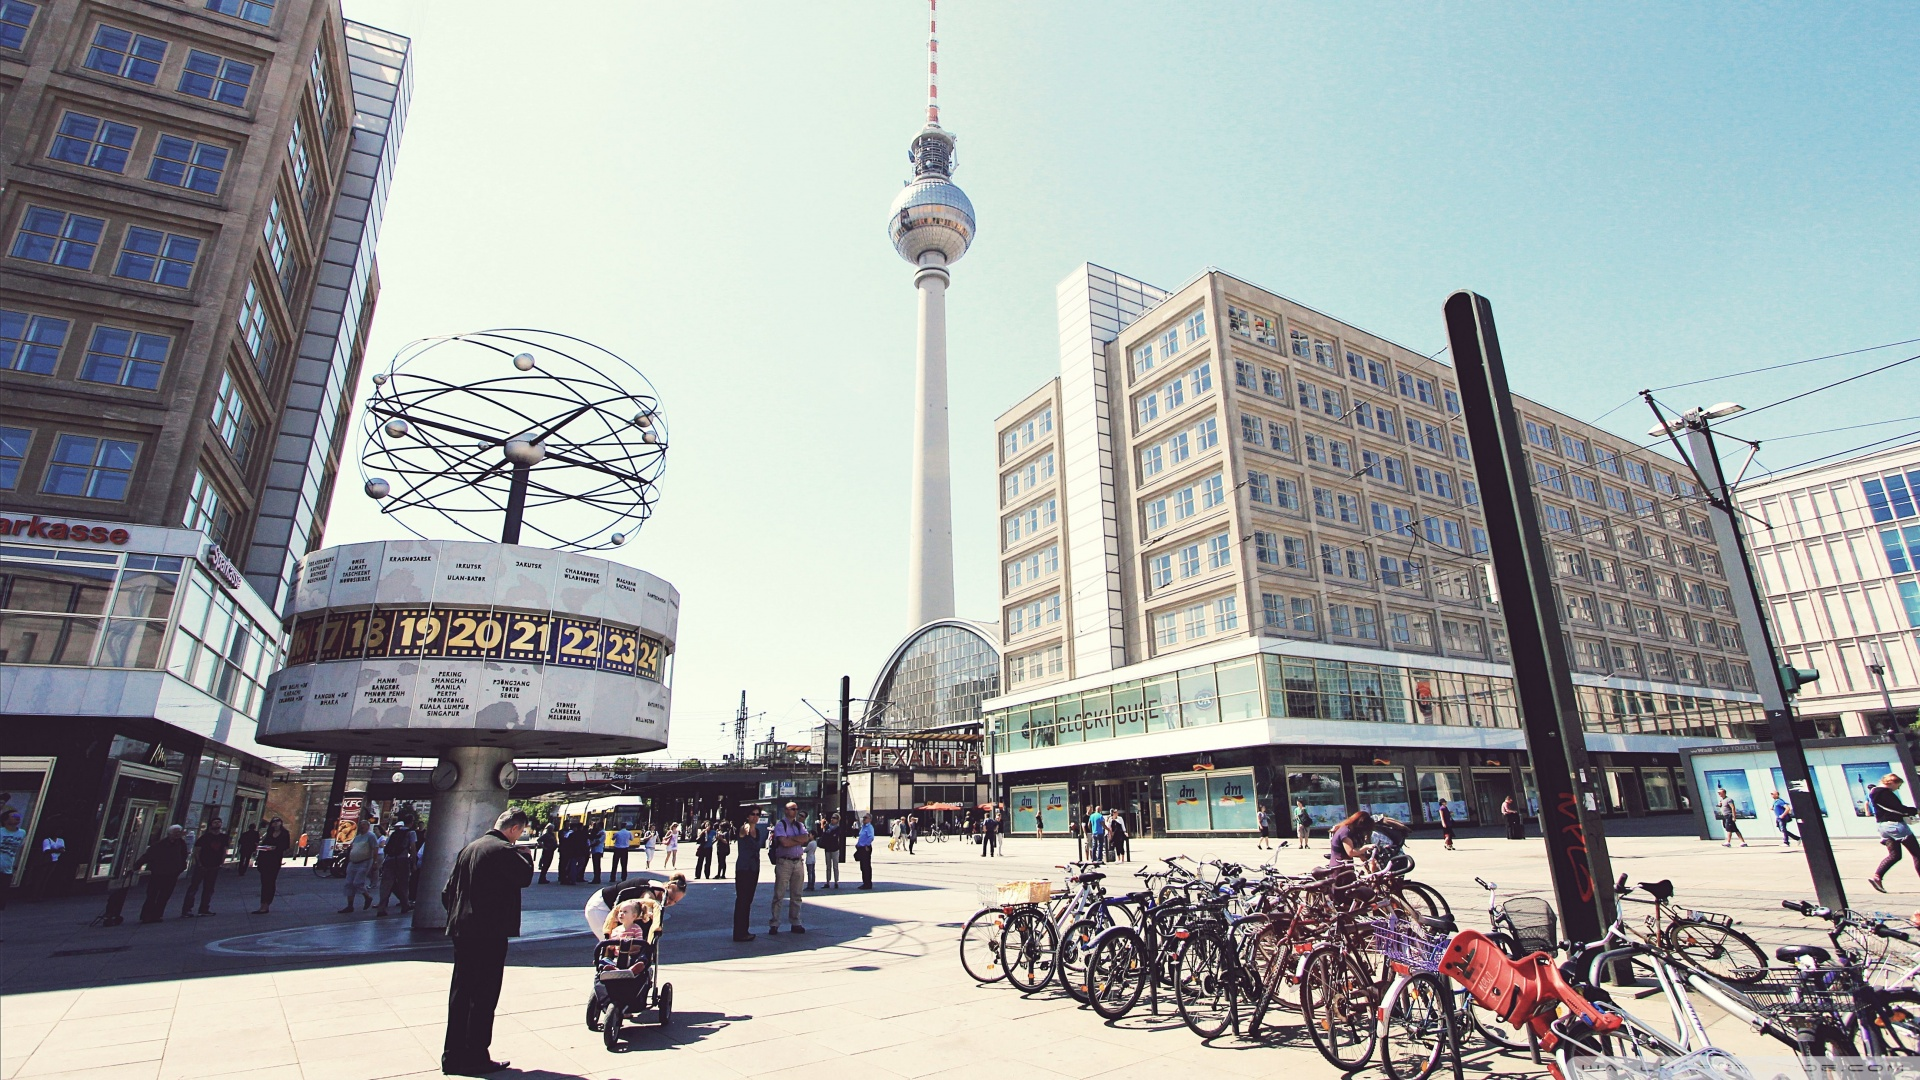 1920x1080 Television Tower Berlin wallpaper